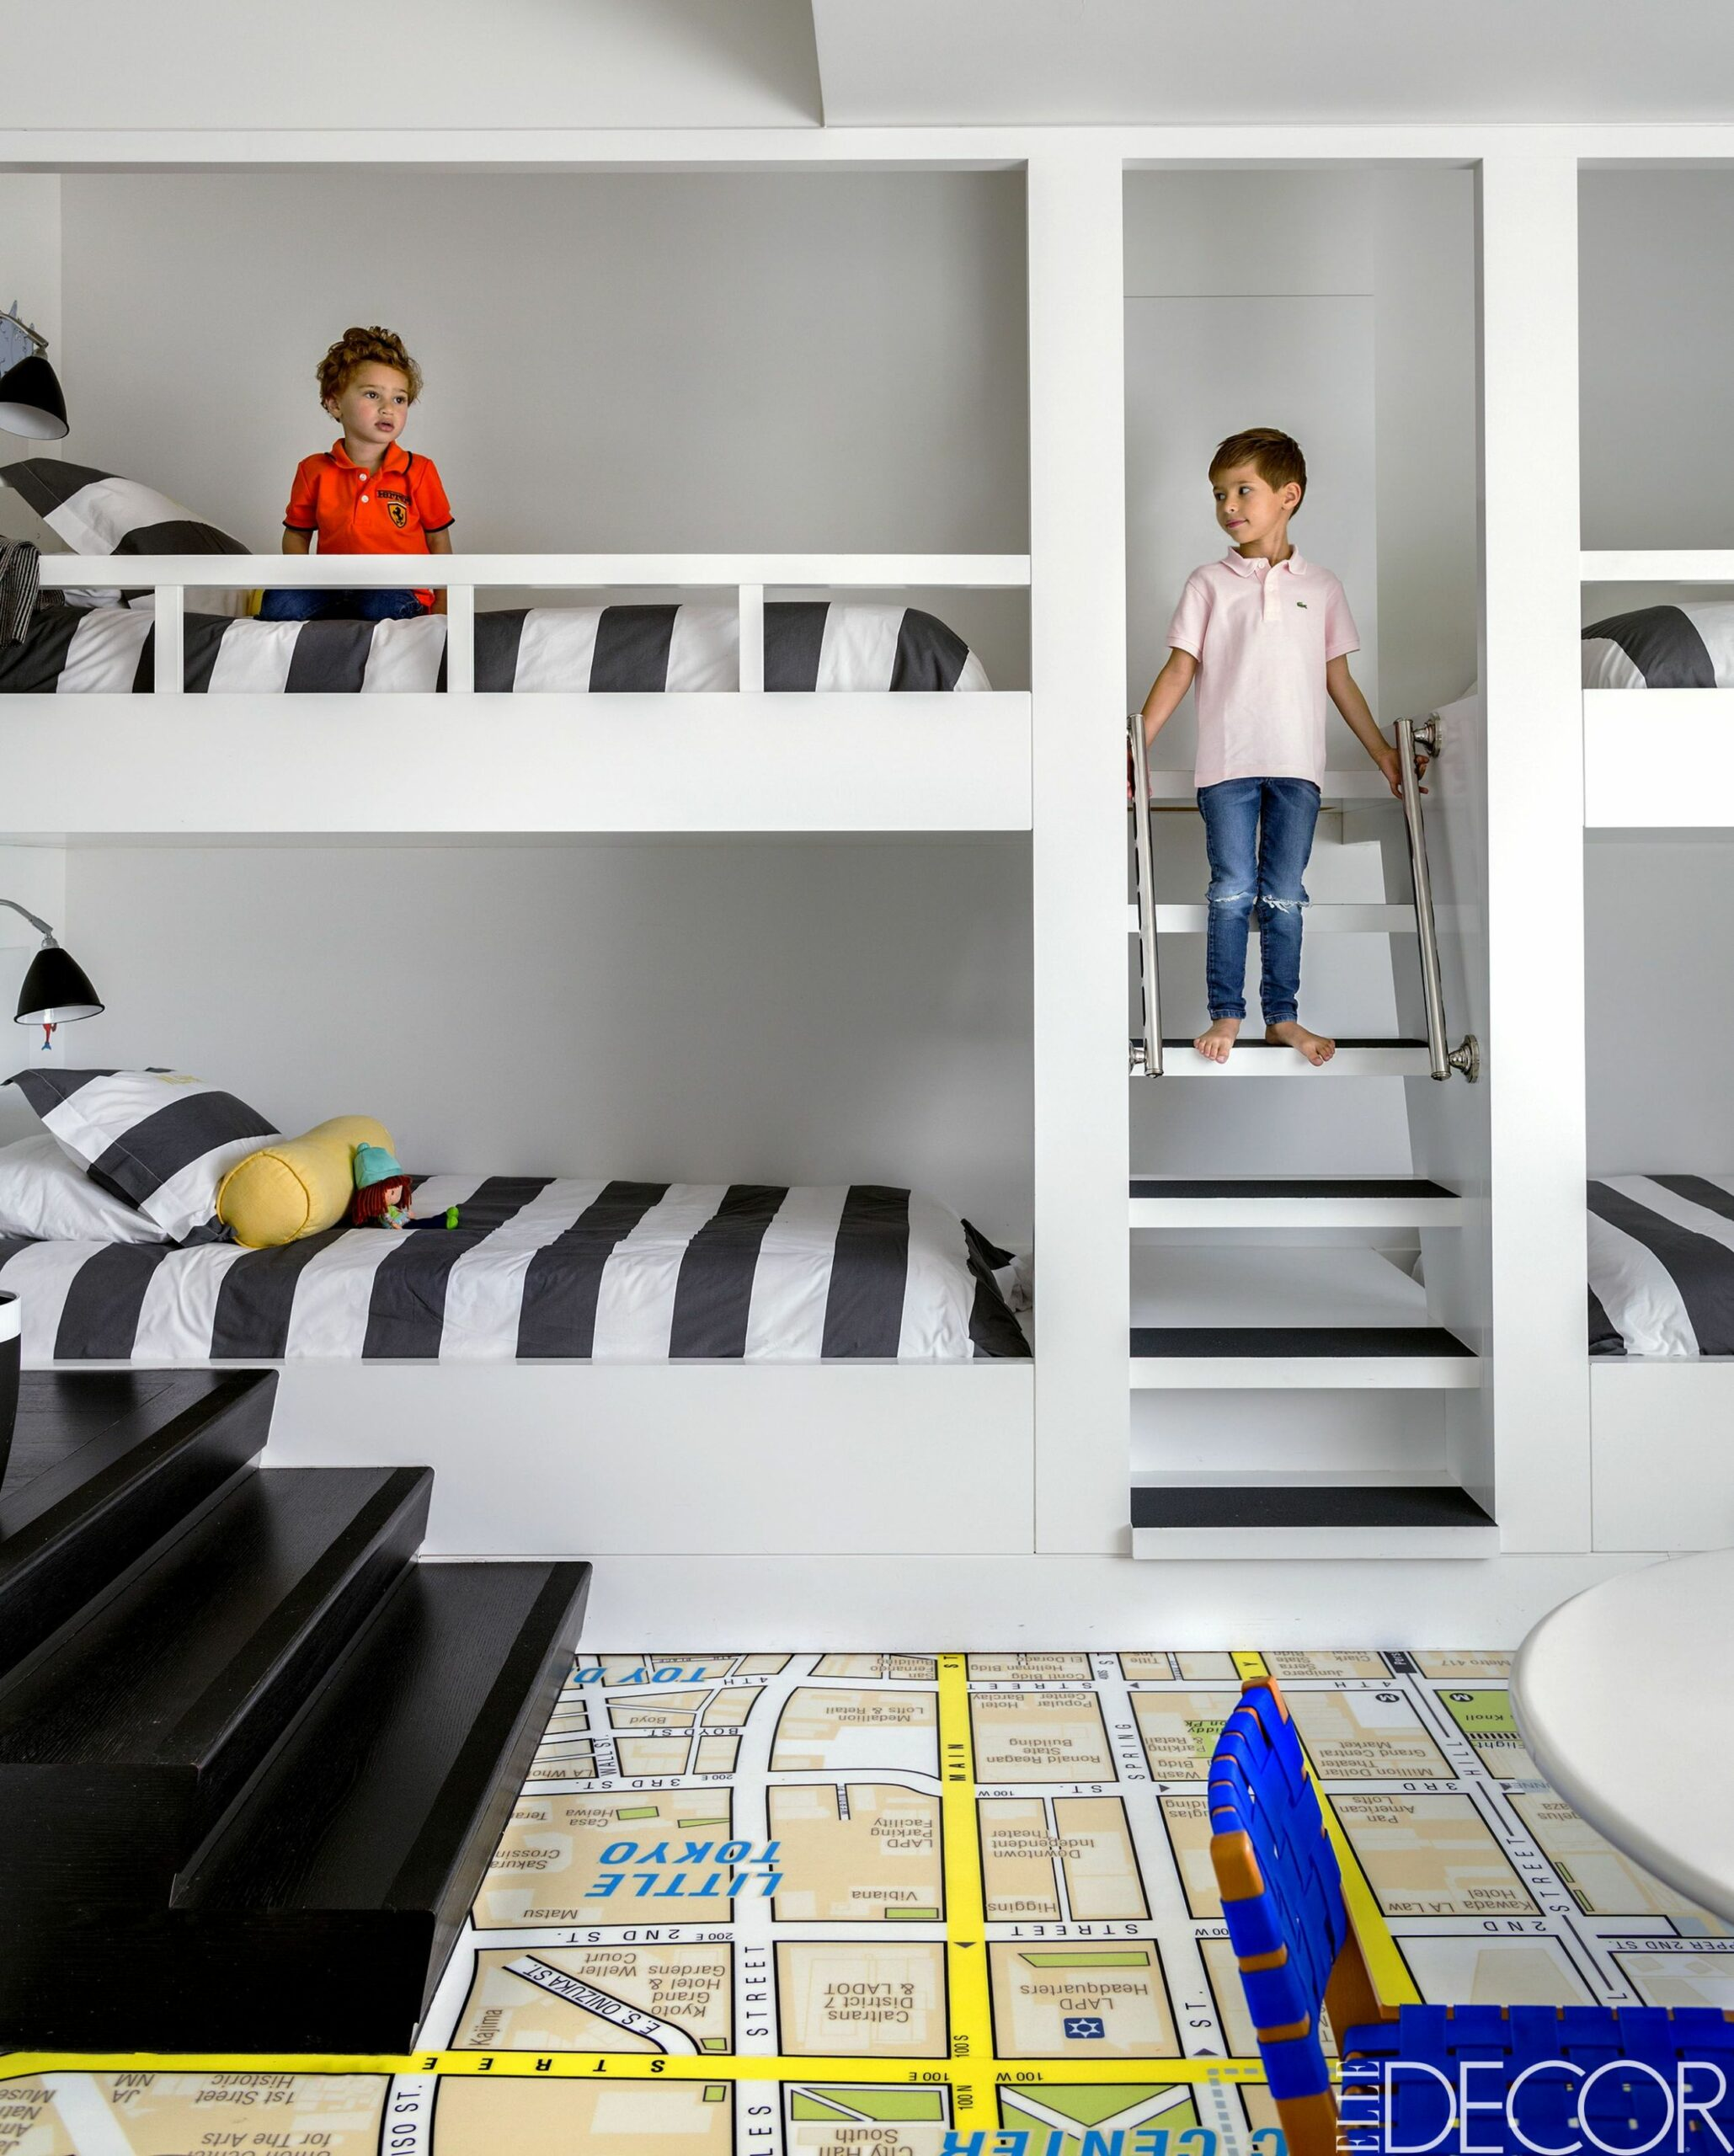 10 Sophisticated Boys Room Ideas - How to Decorate a Boys Bedroom